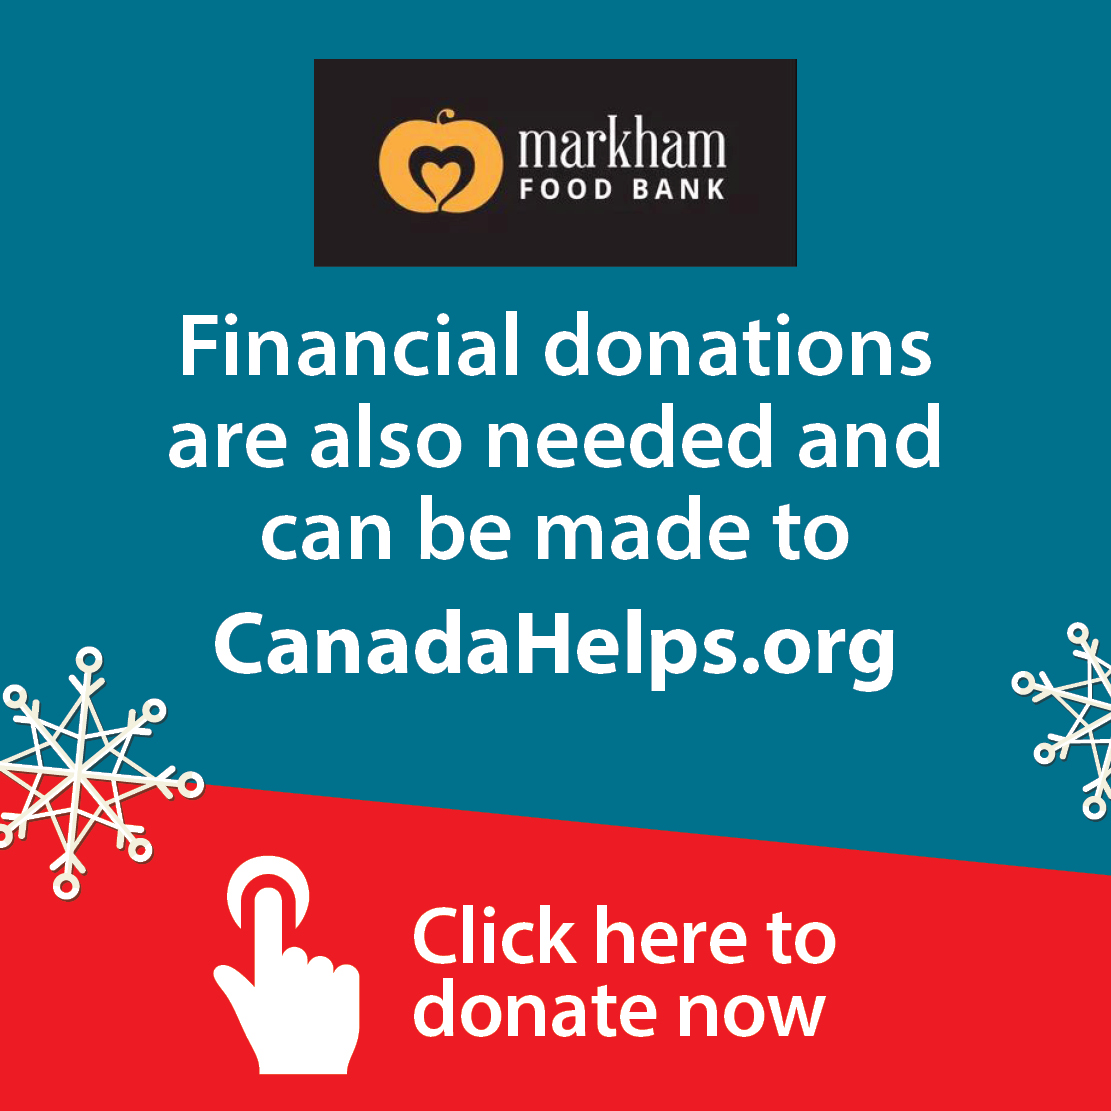 Markham Food Bank Financial Donations